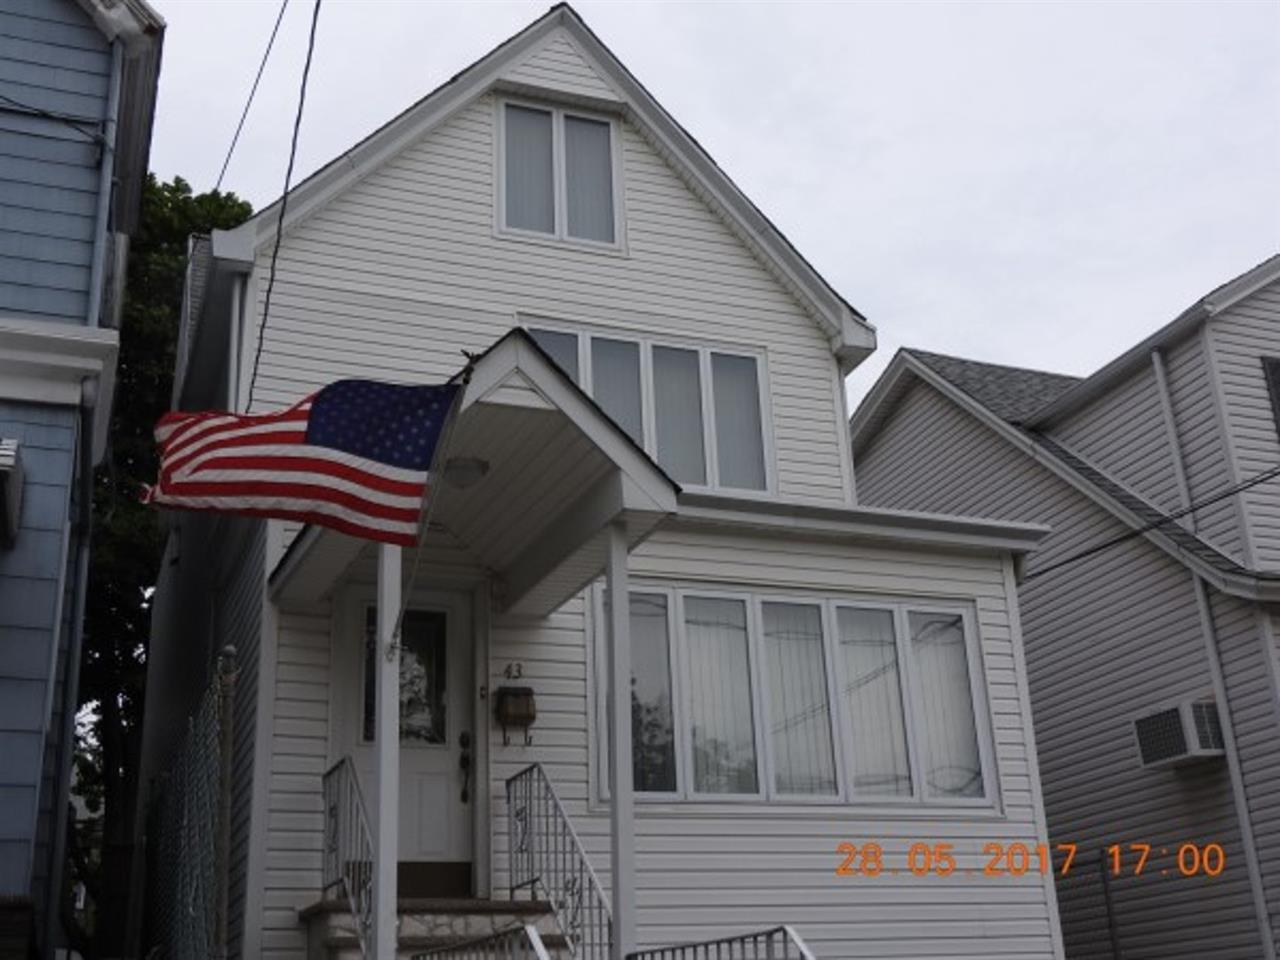 43 WEST 43RD ST, Bayonne, NJ 07002